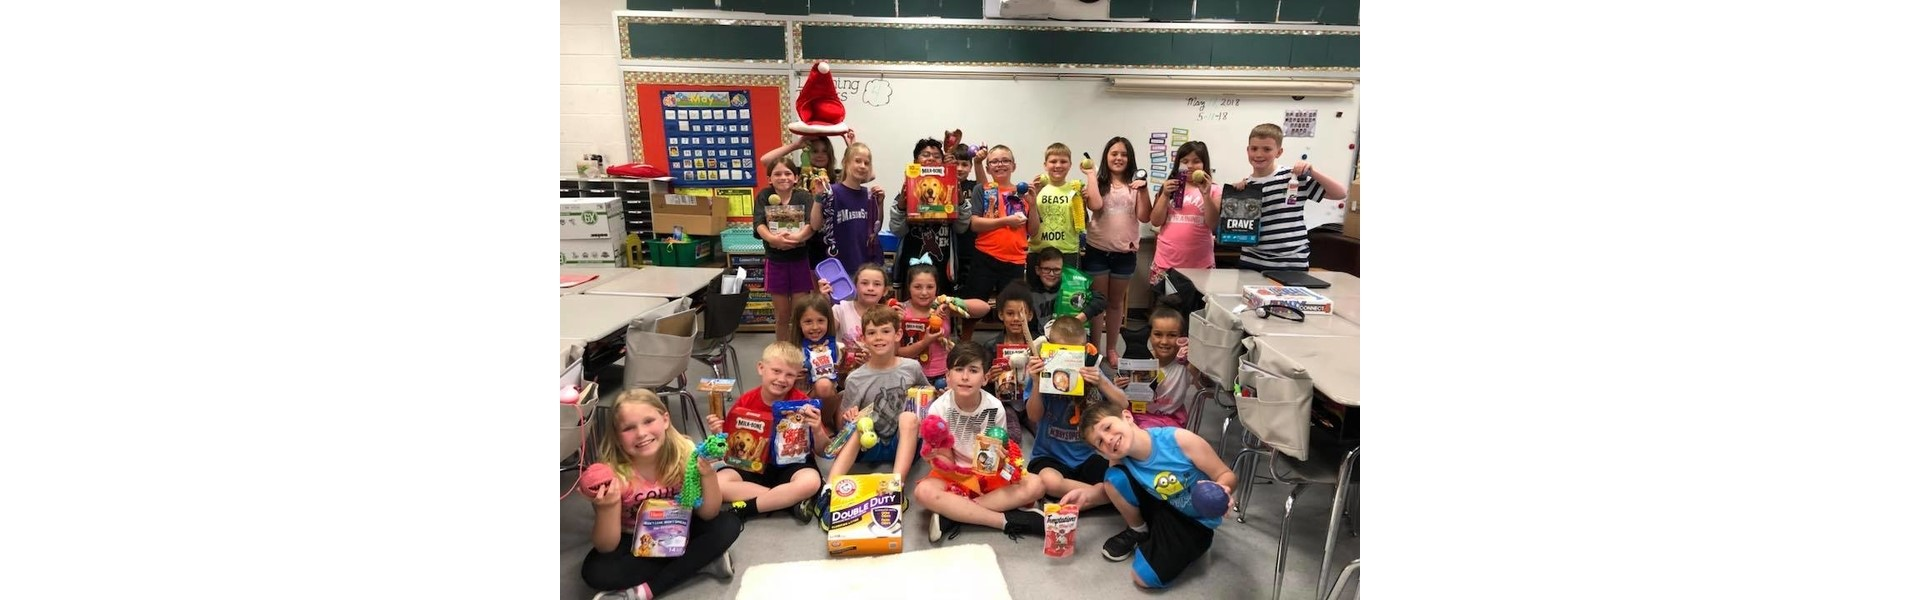 SAAP Donations from Ms. Kenneda's Class